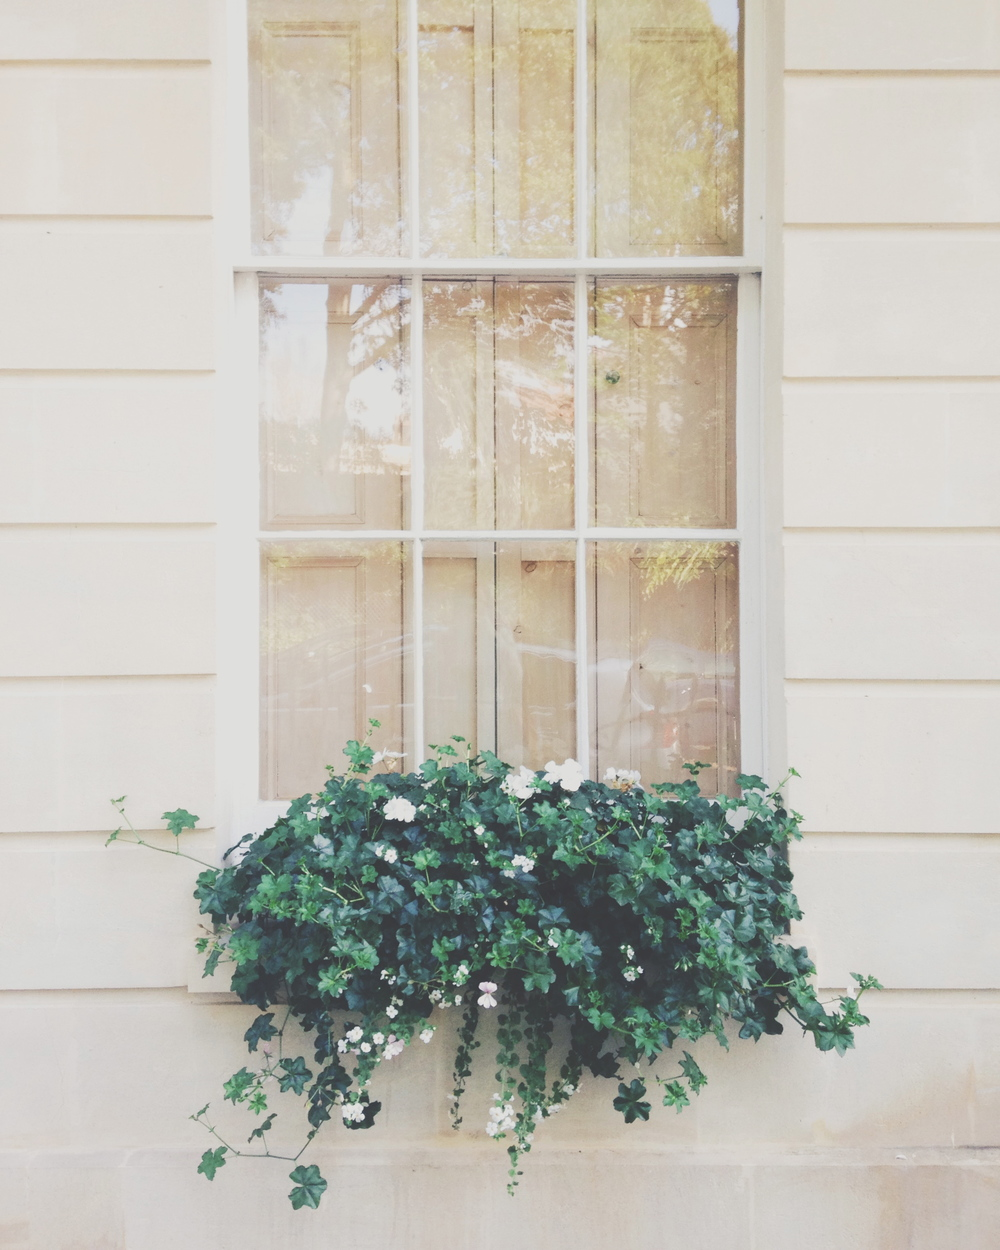 clifton windowsill | sally mussellwhite